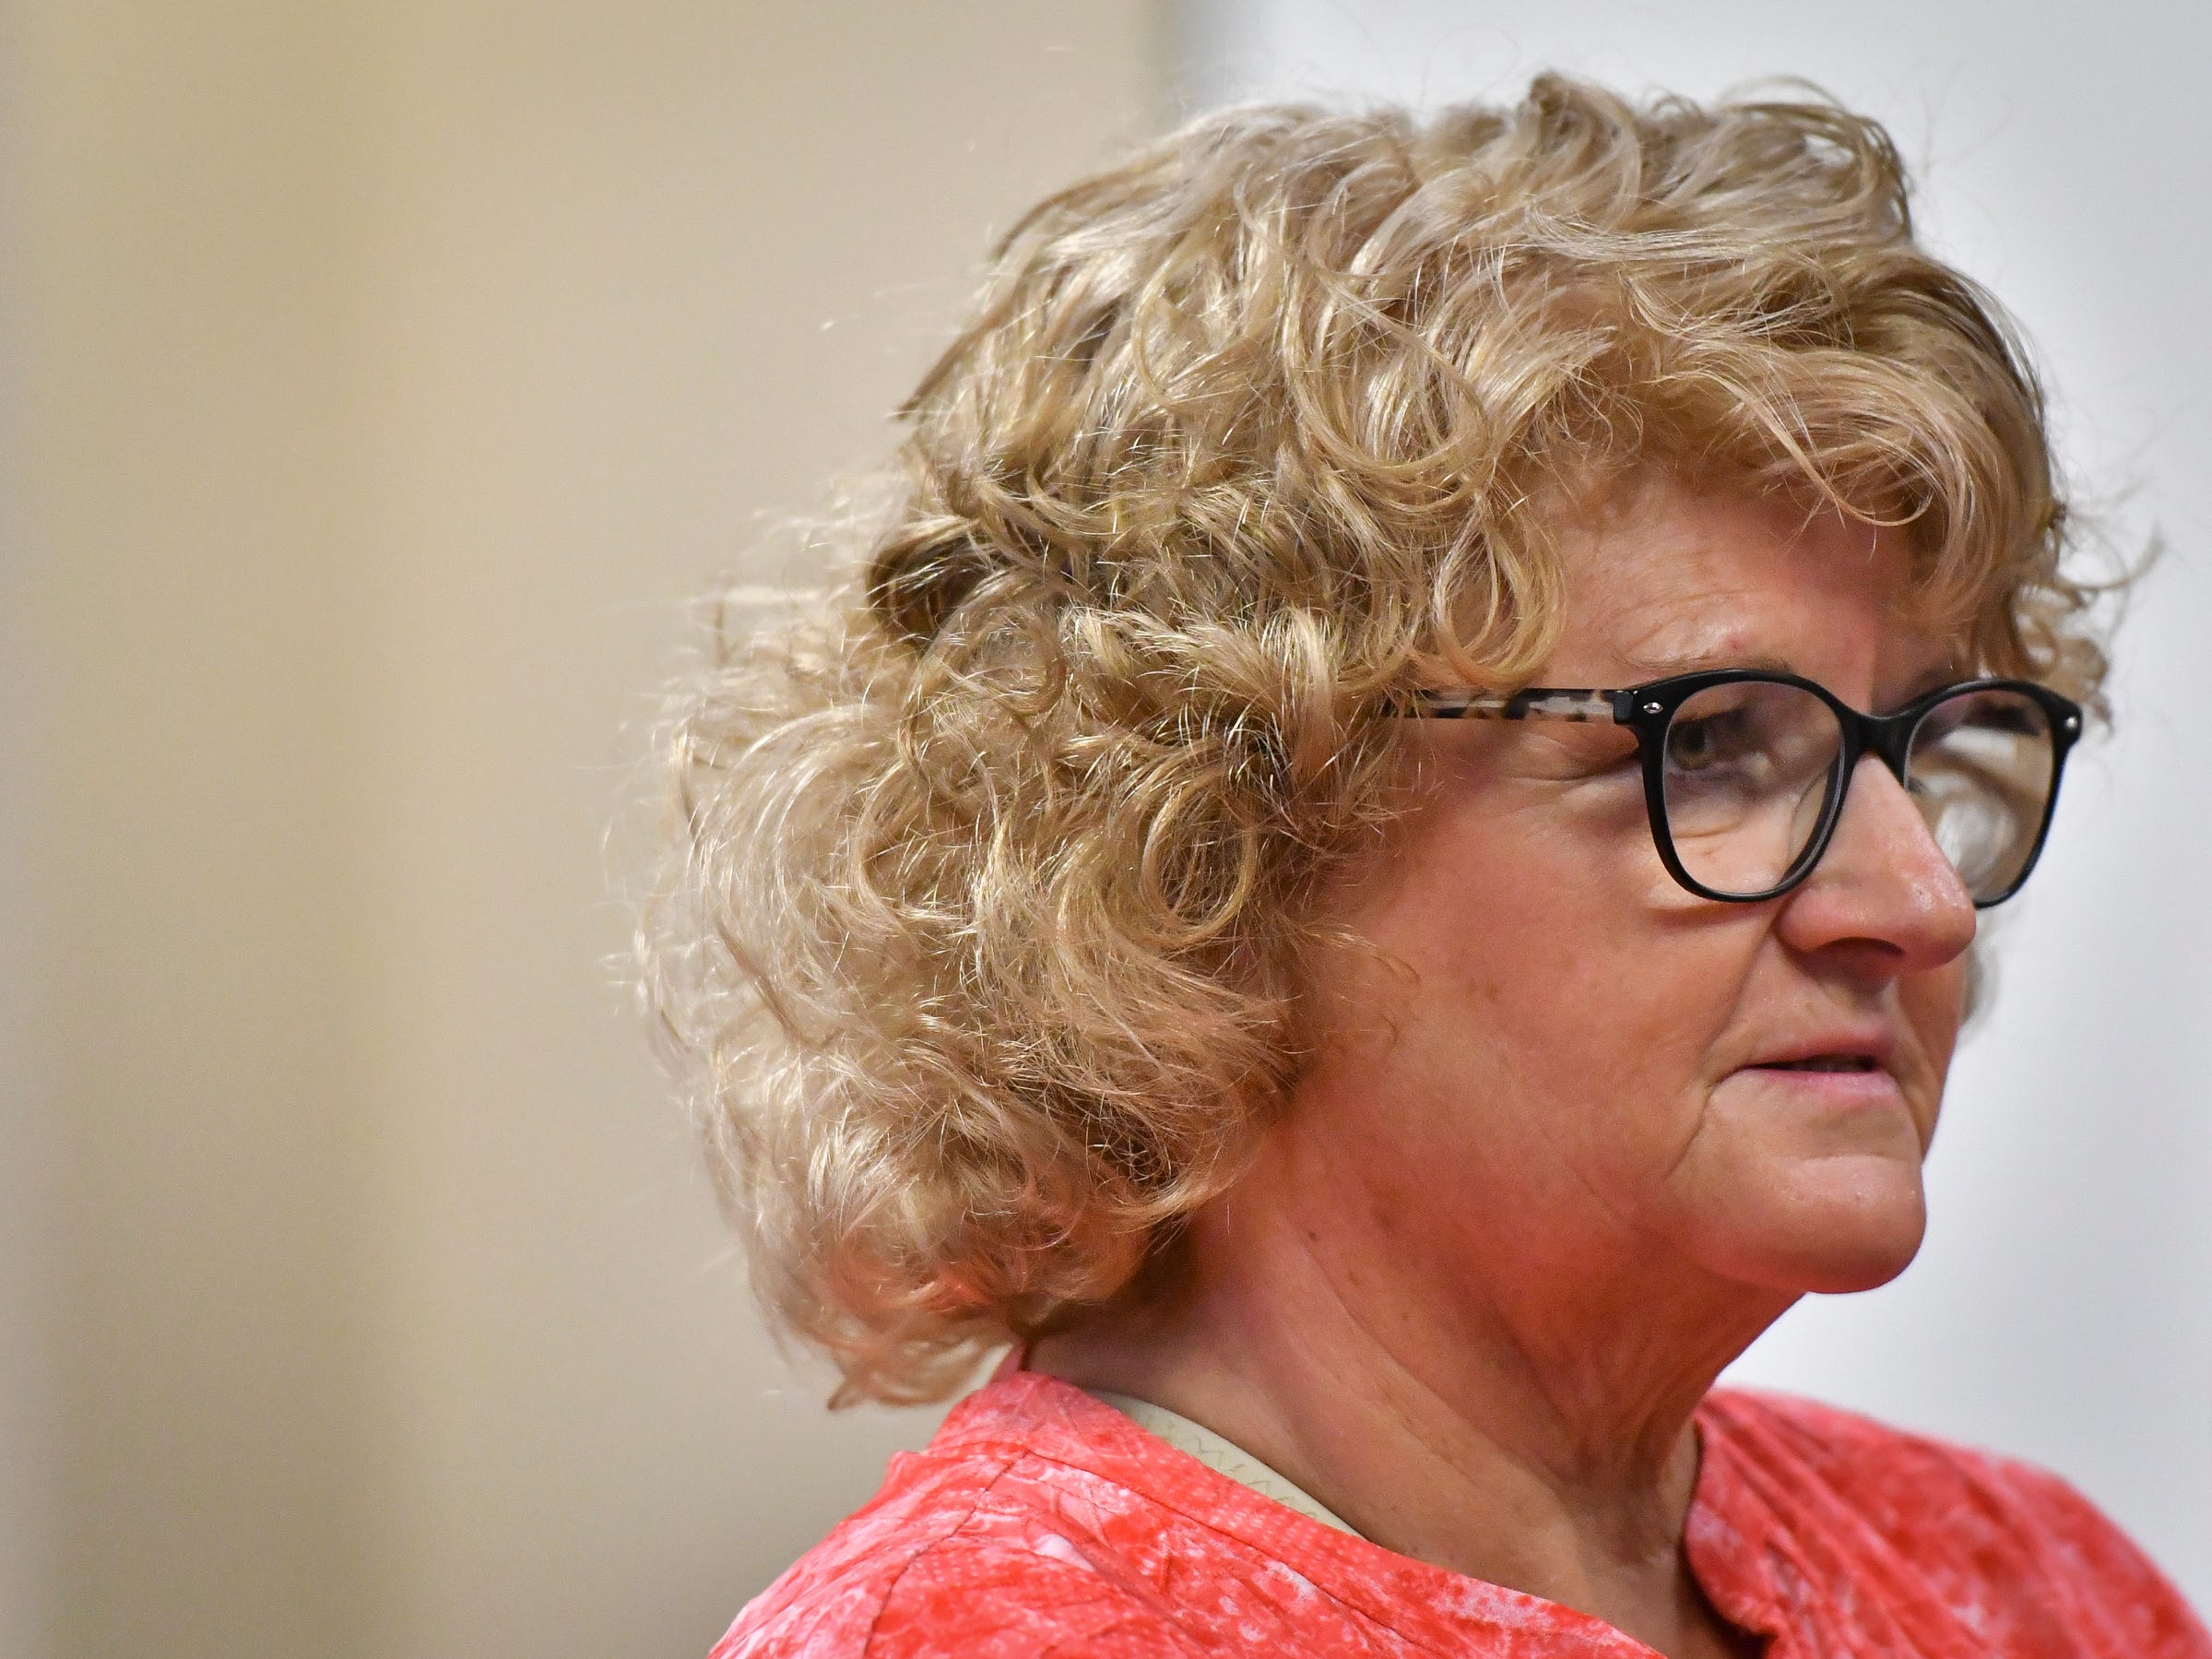 Former MSU Gymnastics Coach Kathie Kleges addresses District Judge Stacia Buchanan on Friday, Sept. 7, 2018, in 54A District Court in downtown Lansing, Michigan.  She has been charged with two counts of lying to a peace officer about her knowledge of ex-MSU and USA Gymnastics doctor Larry Nassar's sexual abuse.